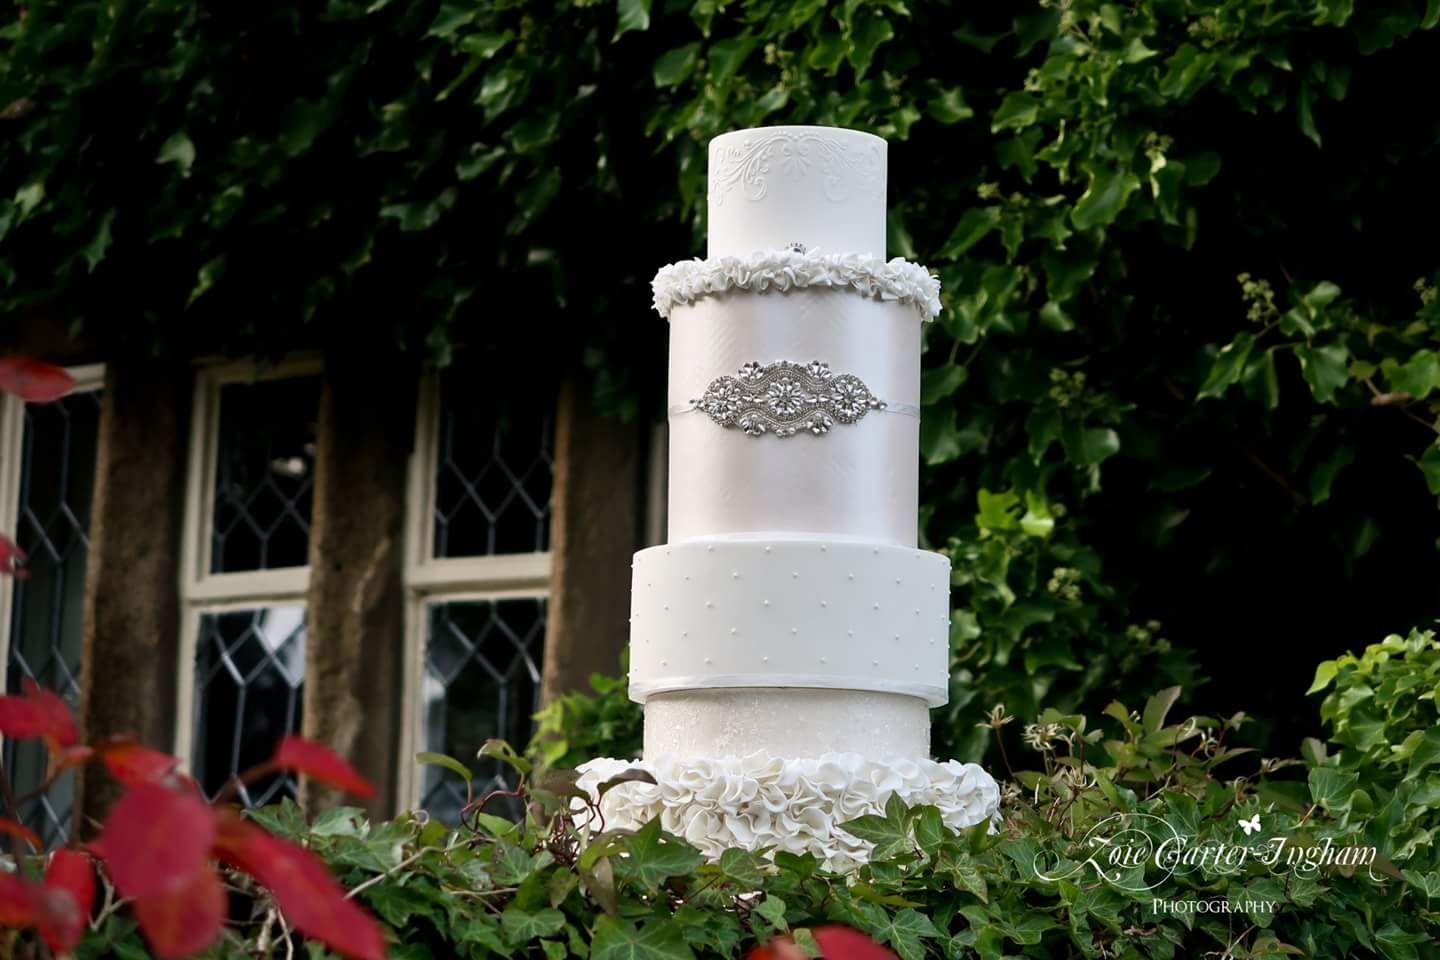 Luxurious all white 5 tier wedding cake with lustre, sparkles, stencilling, ruffles and a bridal bel